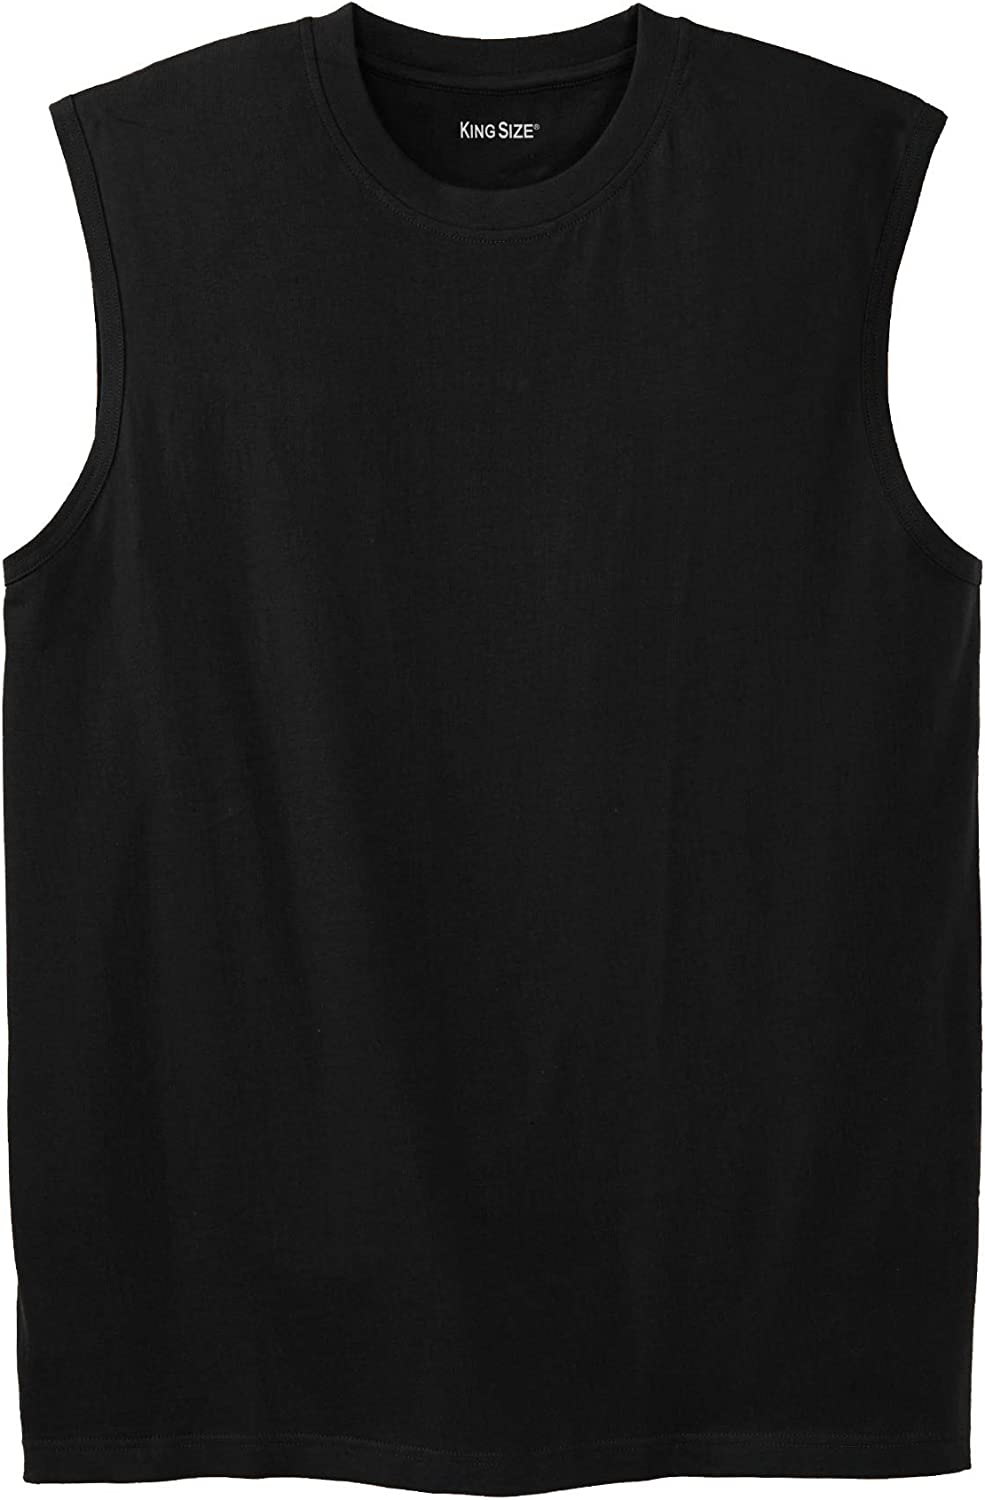 KingSize Men's Big Tall Free shipping New T-Shirt Muscle Limited price Lightweight Shrink-Less